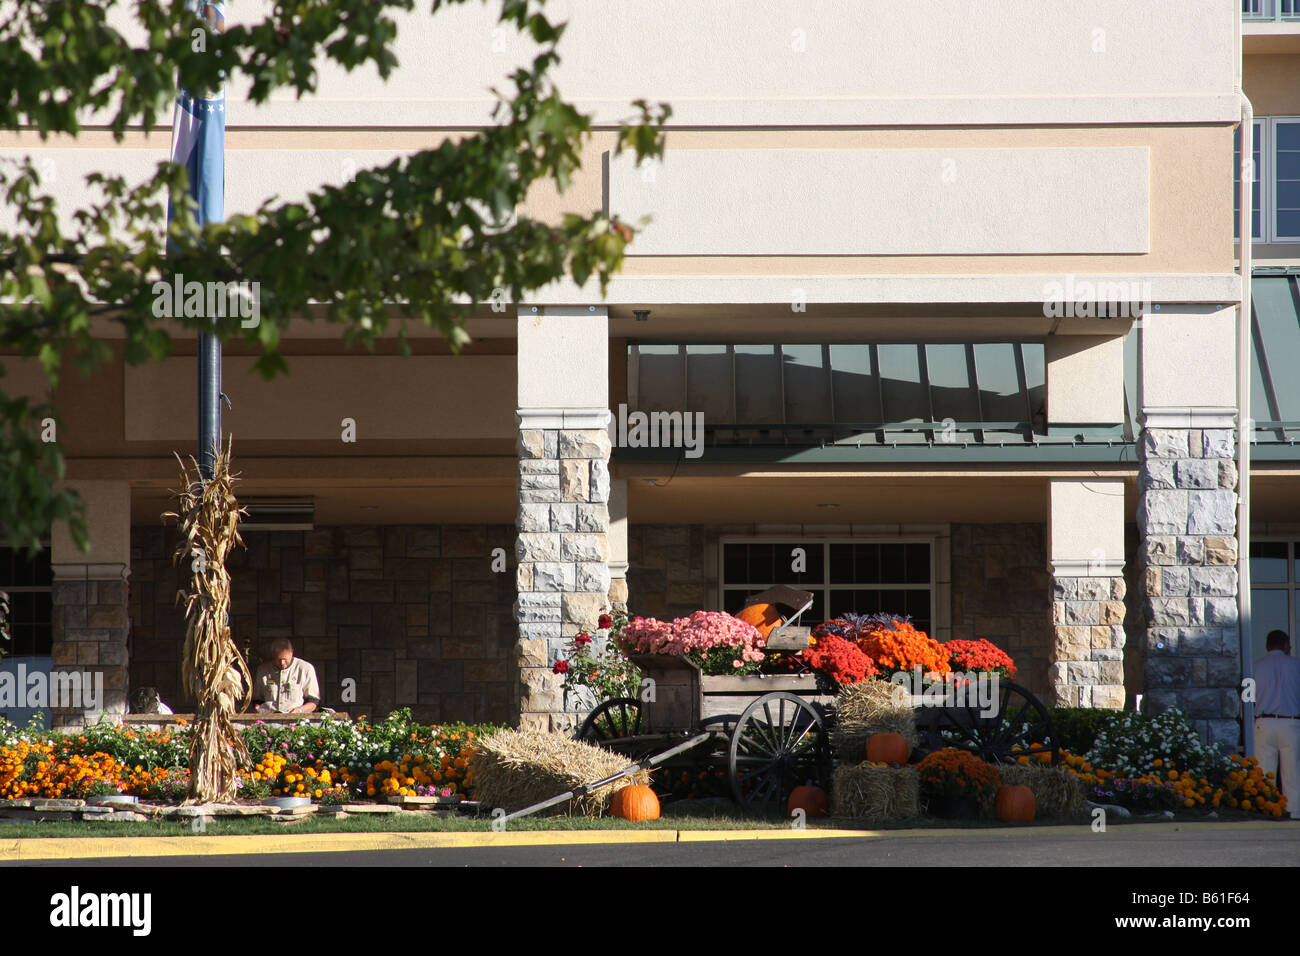 Front entrance to the hotel Chateau on the Lake in Branson Missouri showing fall decorations - Stock Image